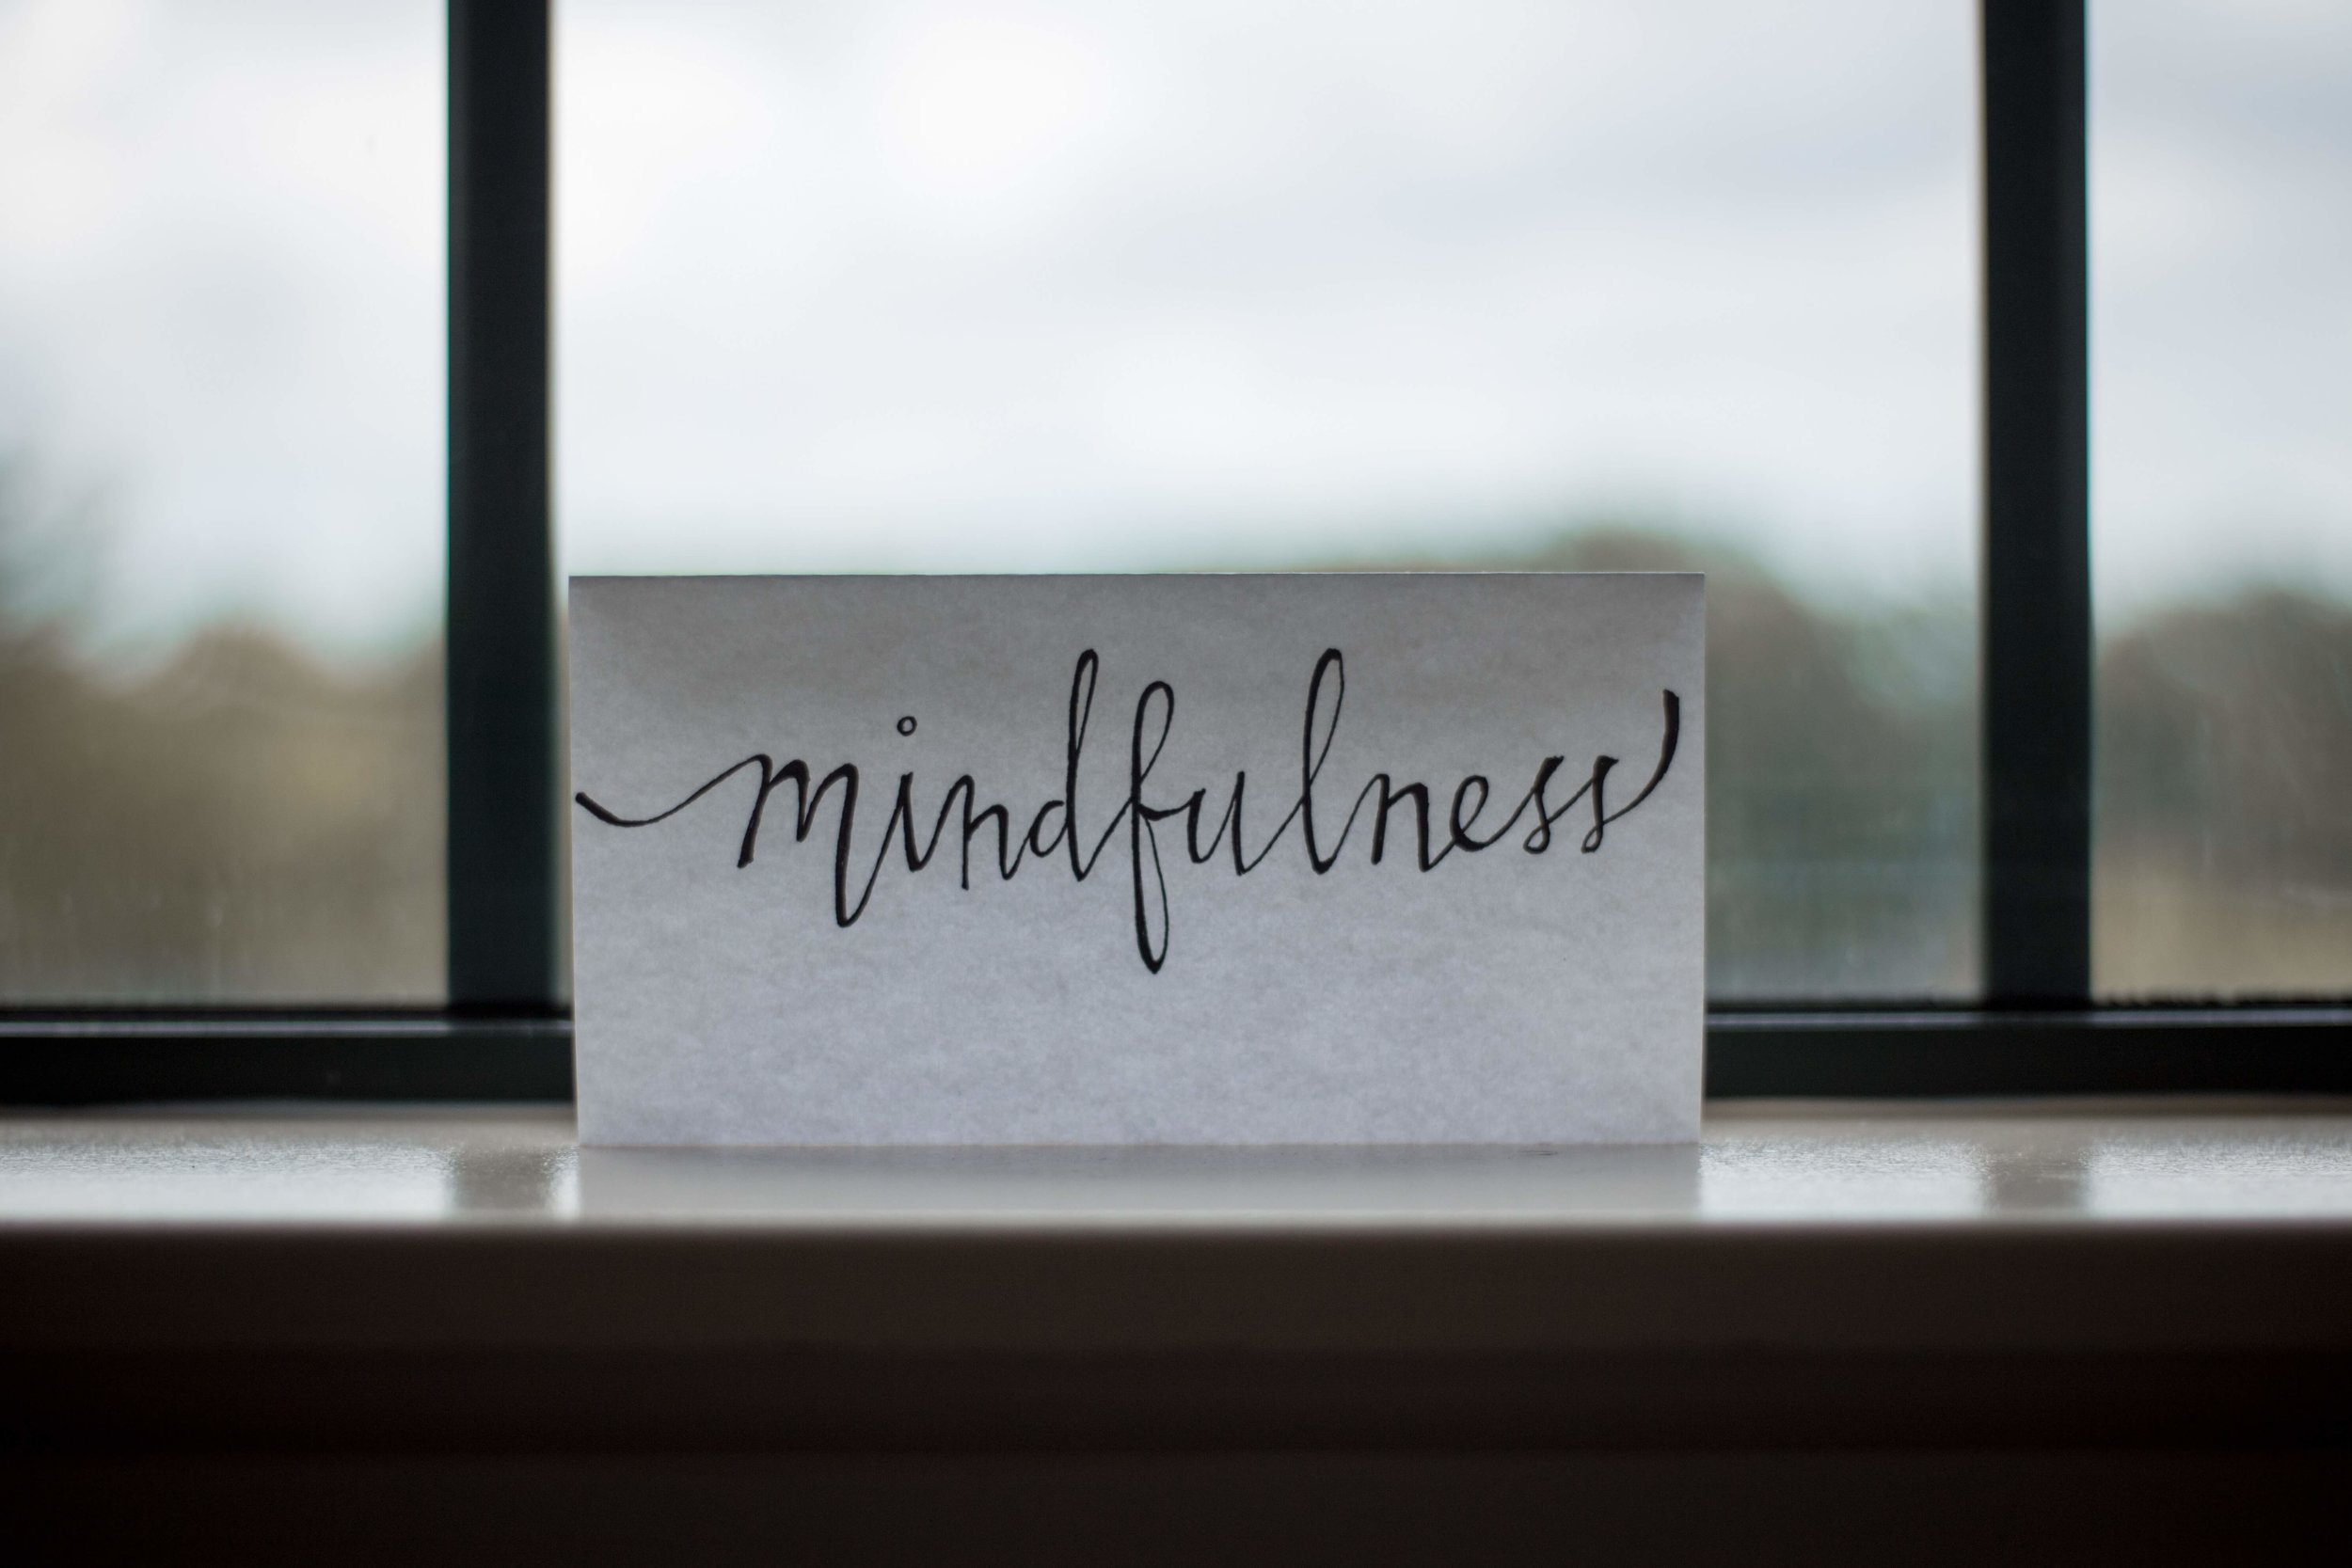 Mindfulness brings clarity, insight, acceptance and harmony.Less stress - More joy. -